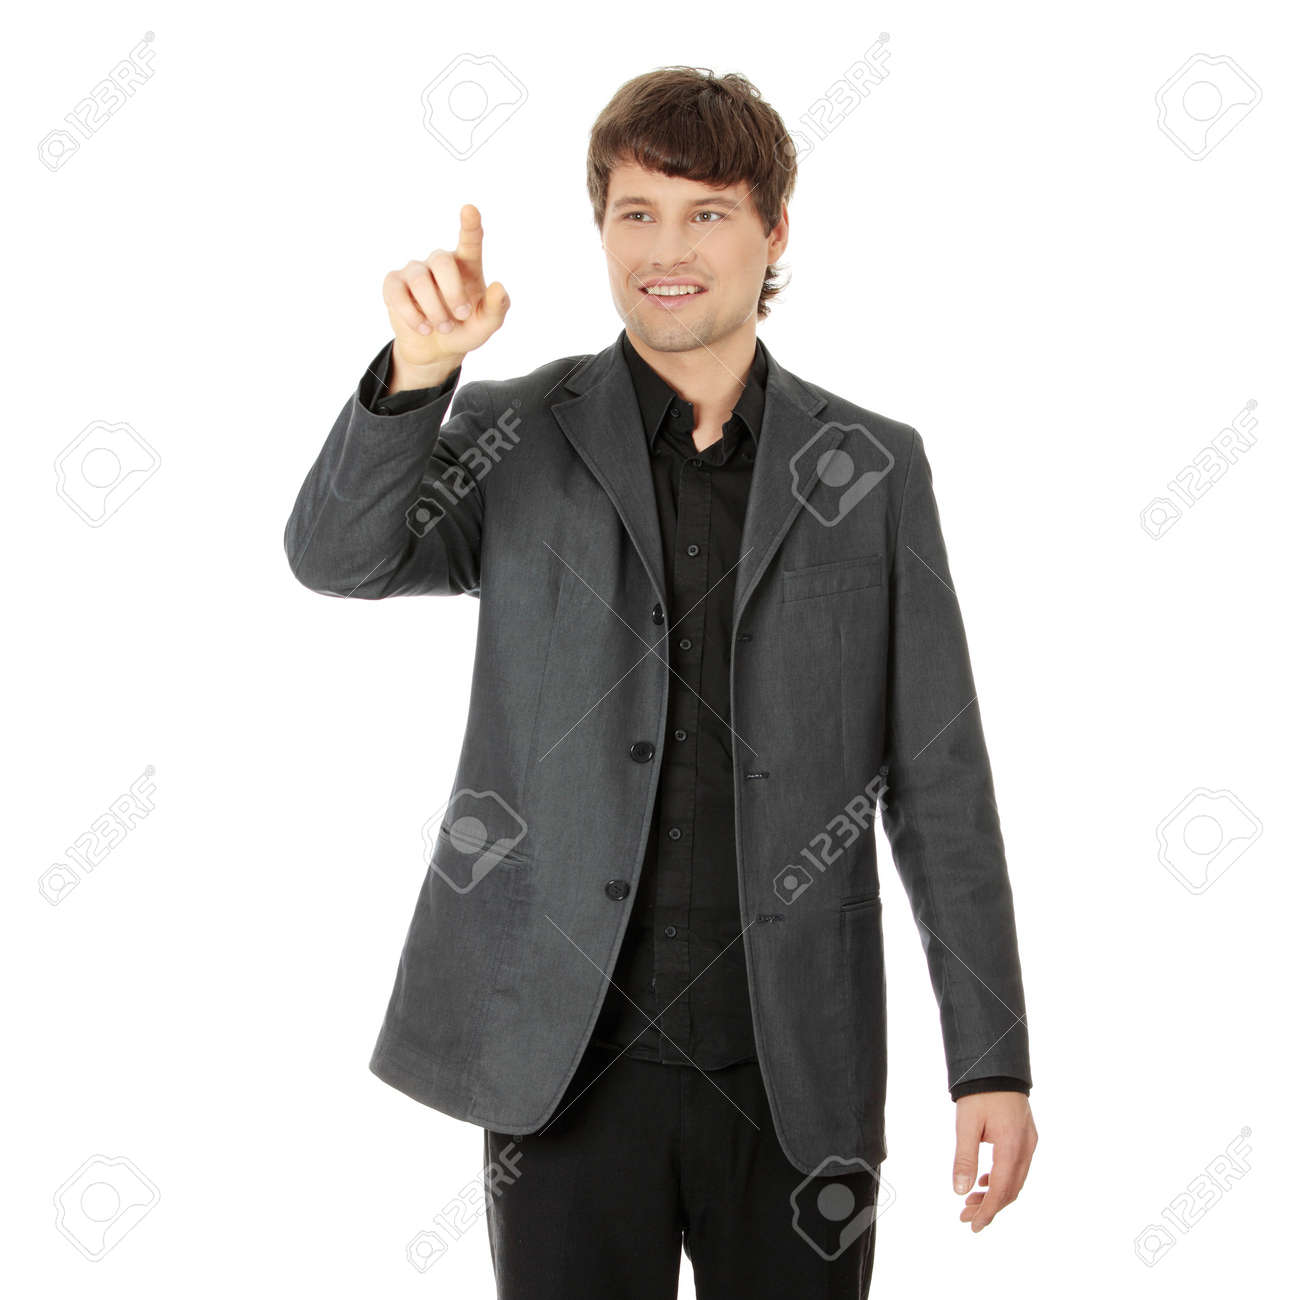 Handsome businessman pressing an abstract touchscreen button isolated on white Stock Photo - 8829286